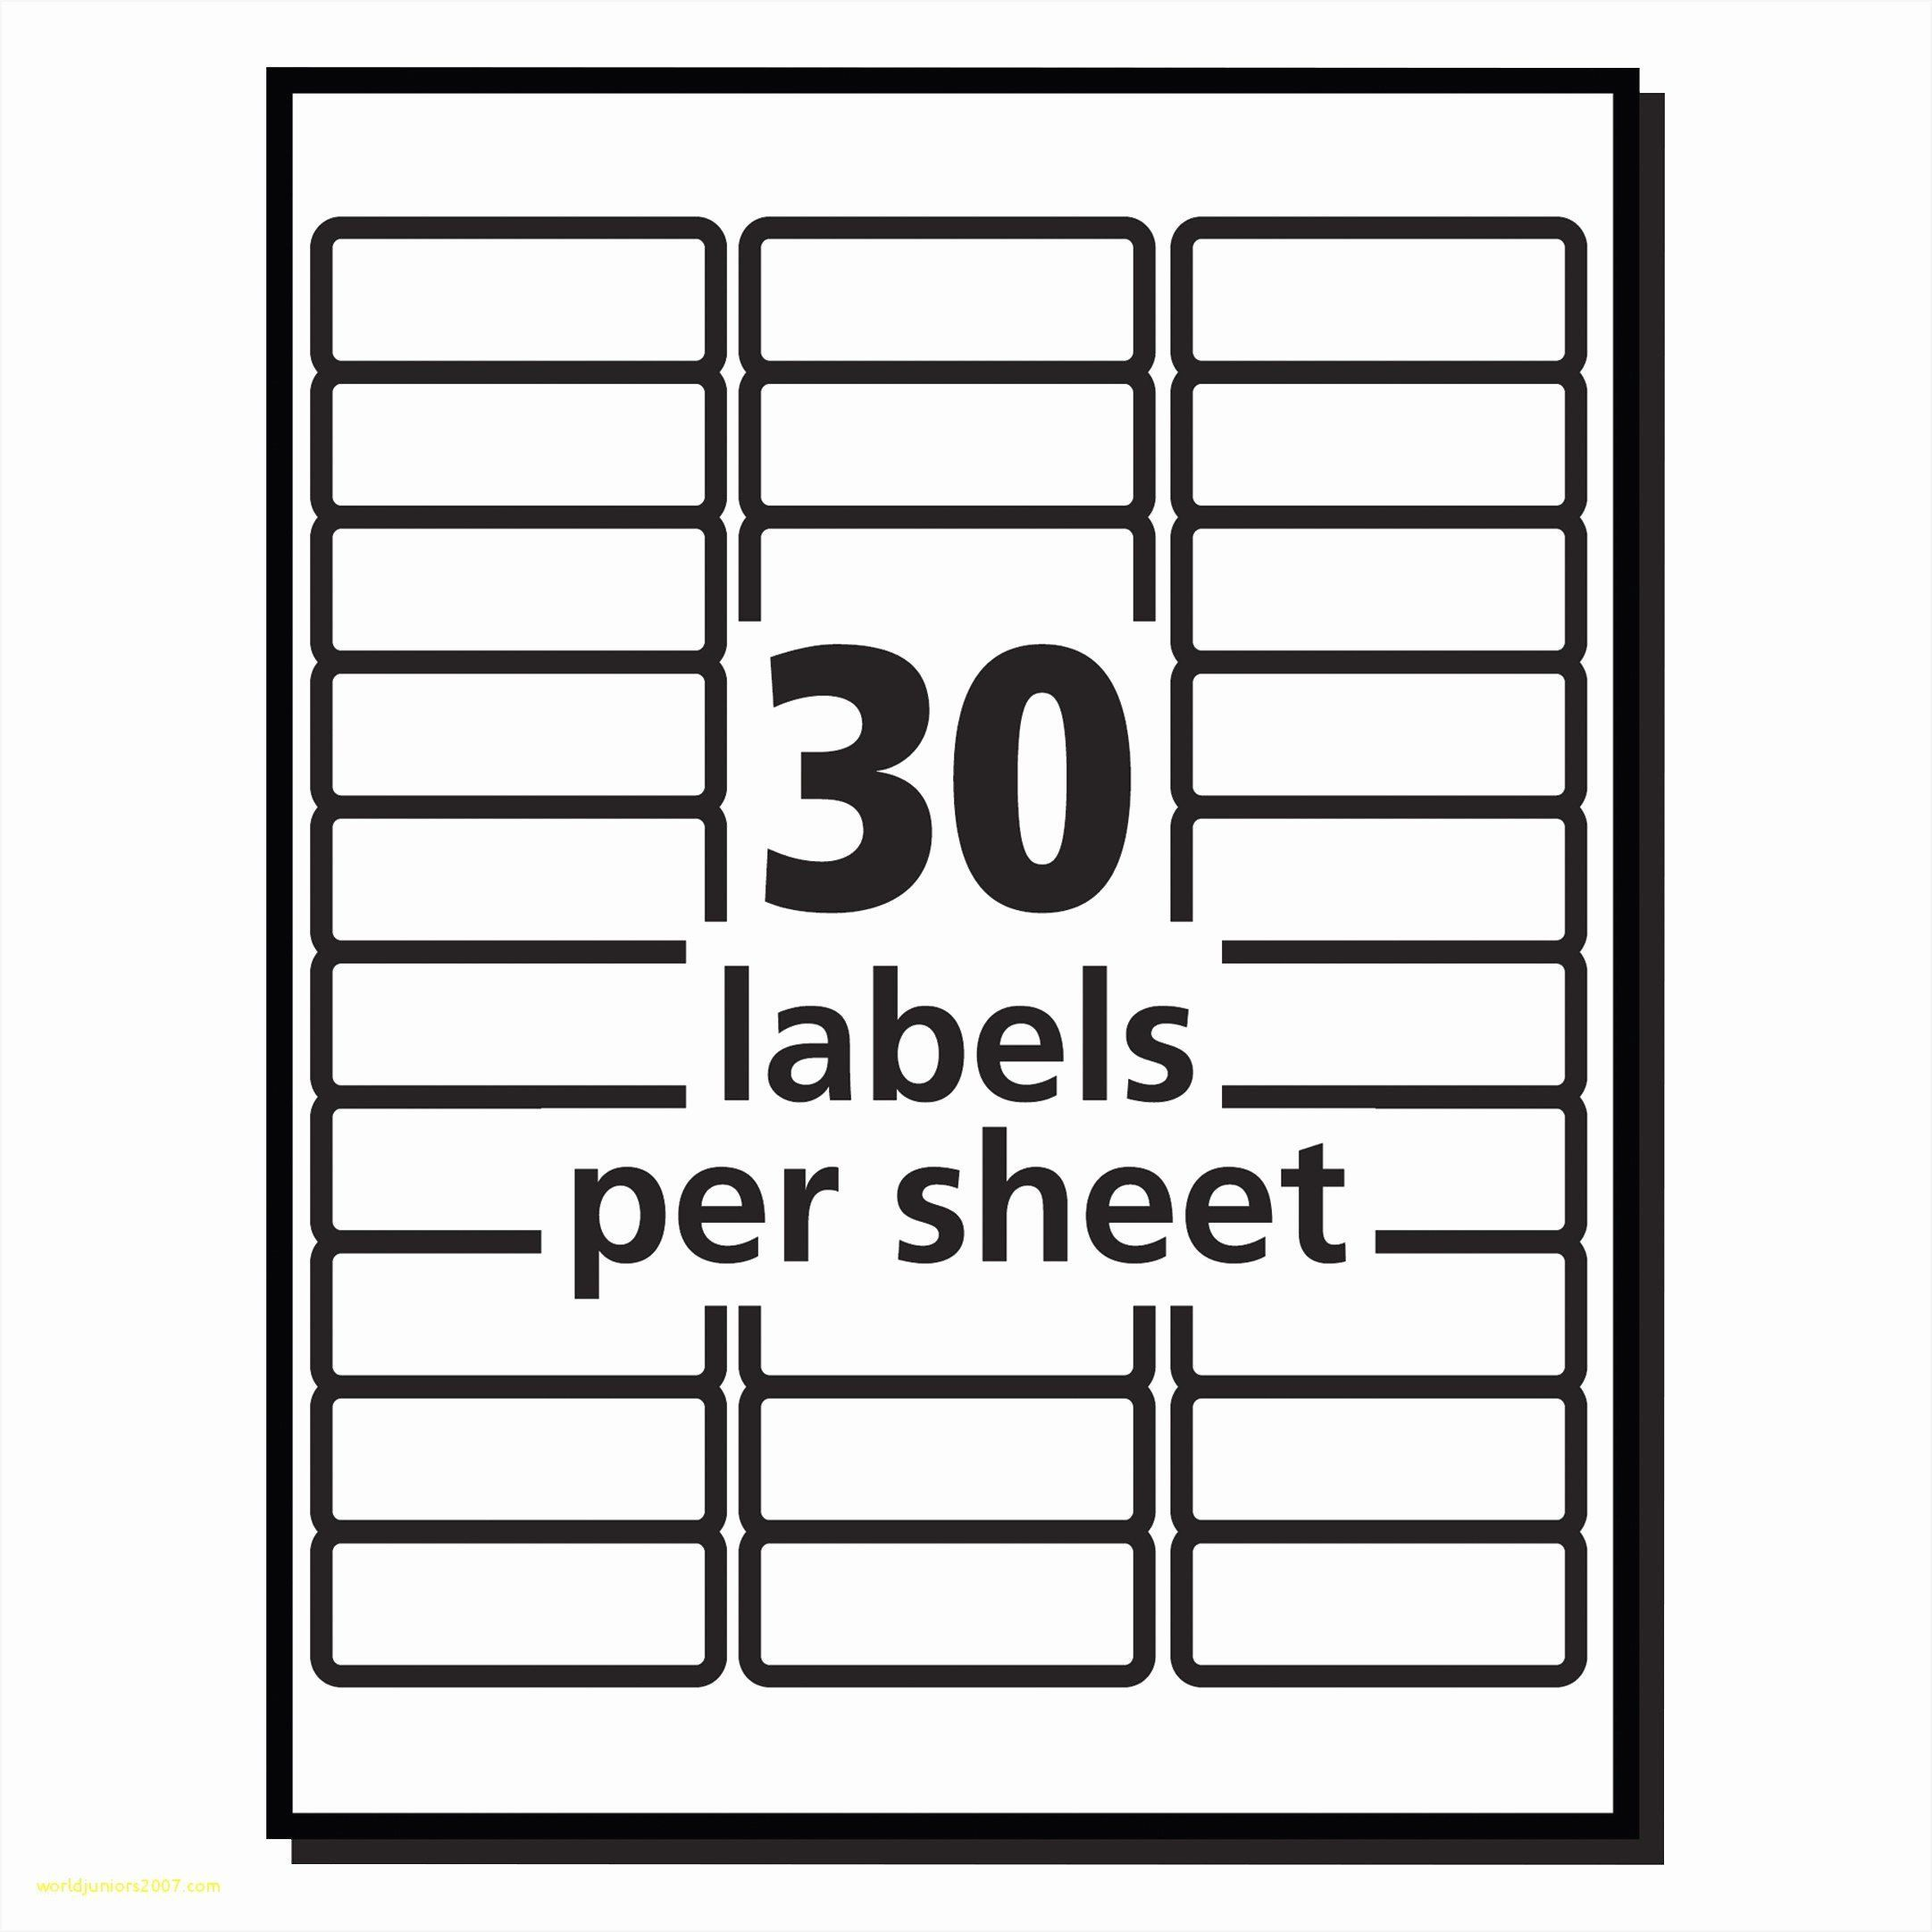 010 Magnificent Free Avery Addres Label Template For Mac High Definition  5160Full